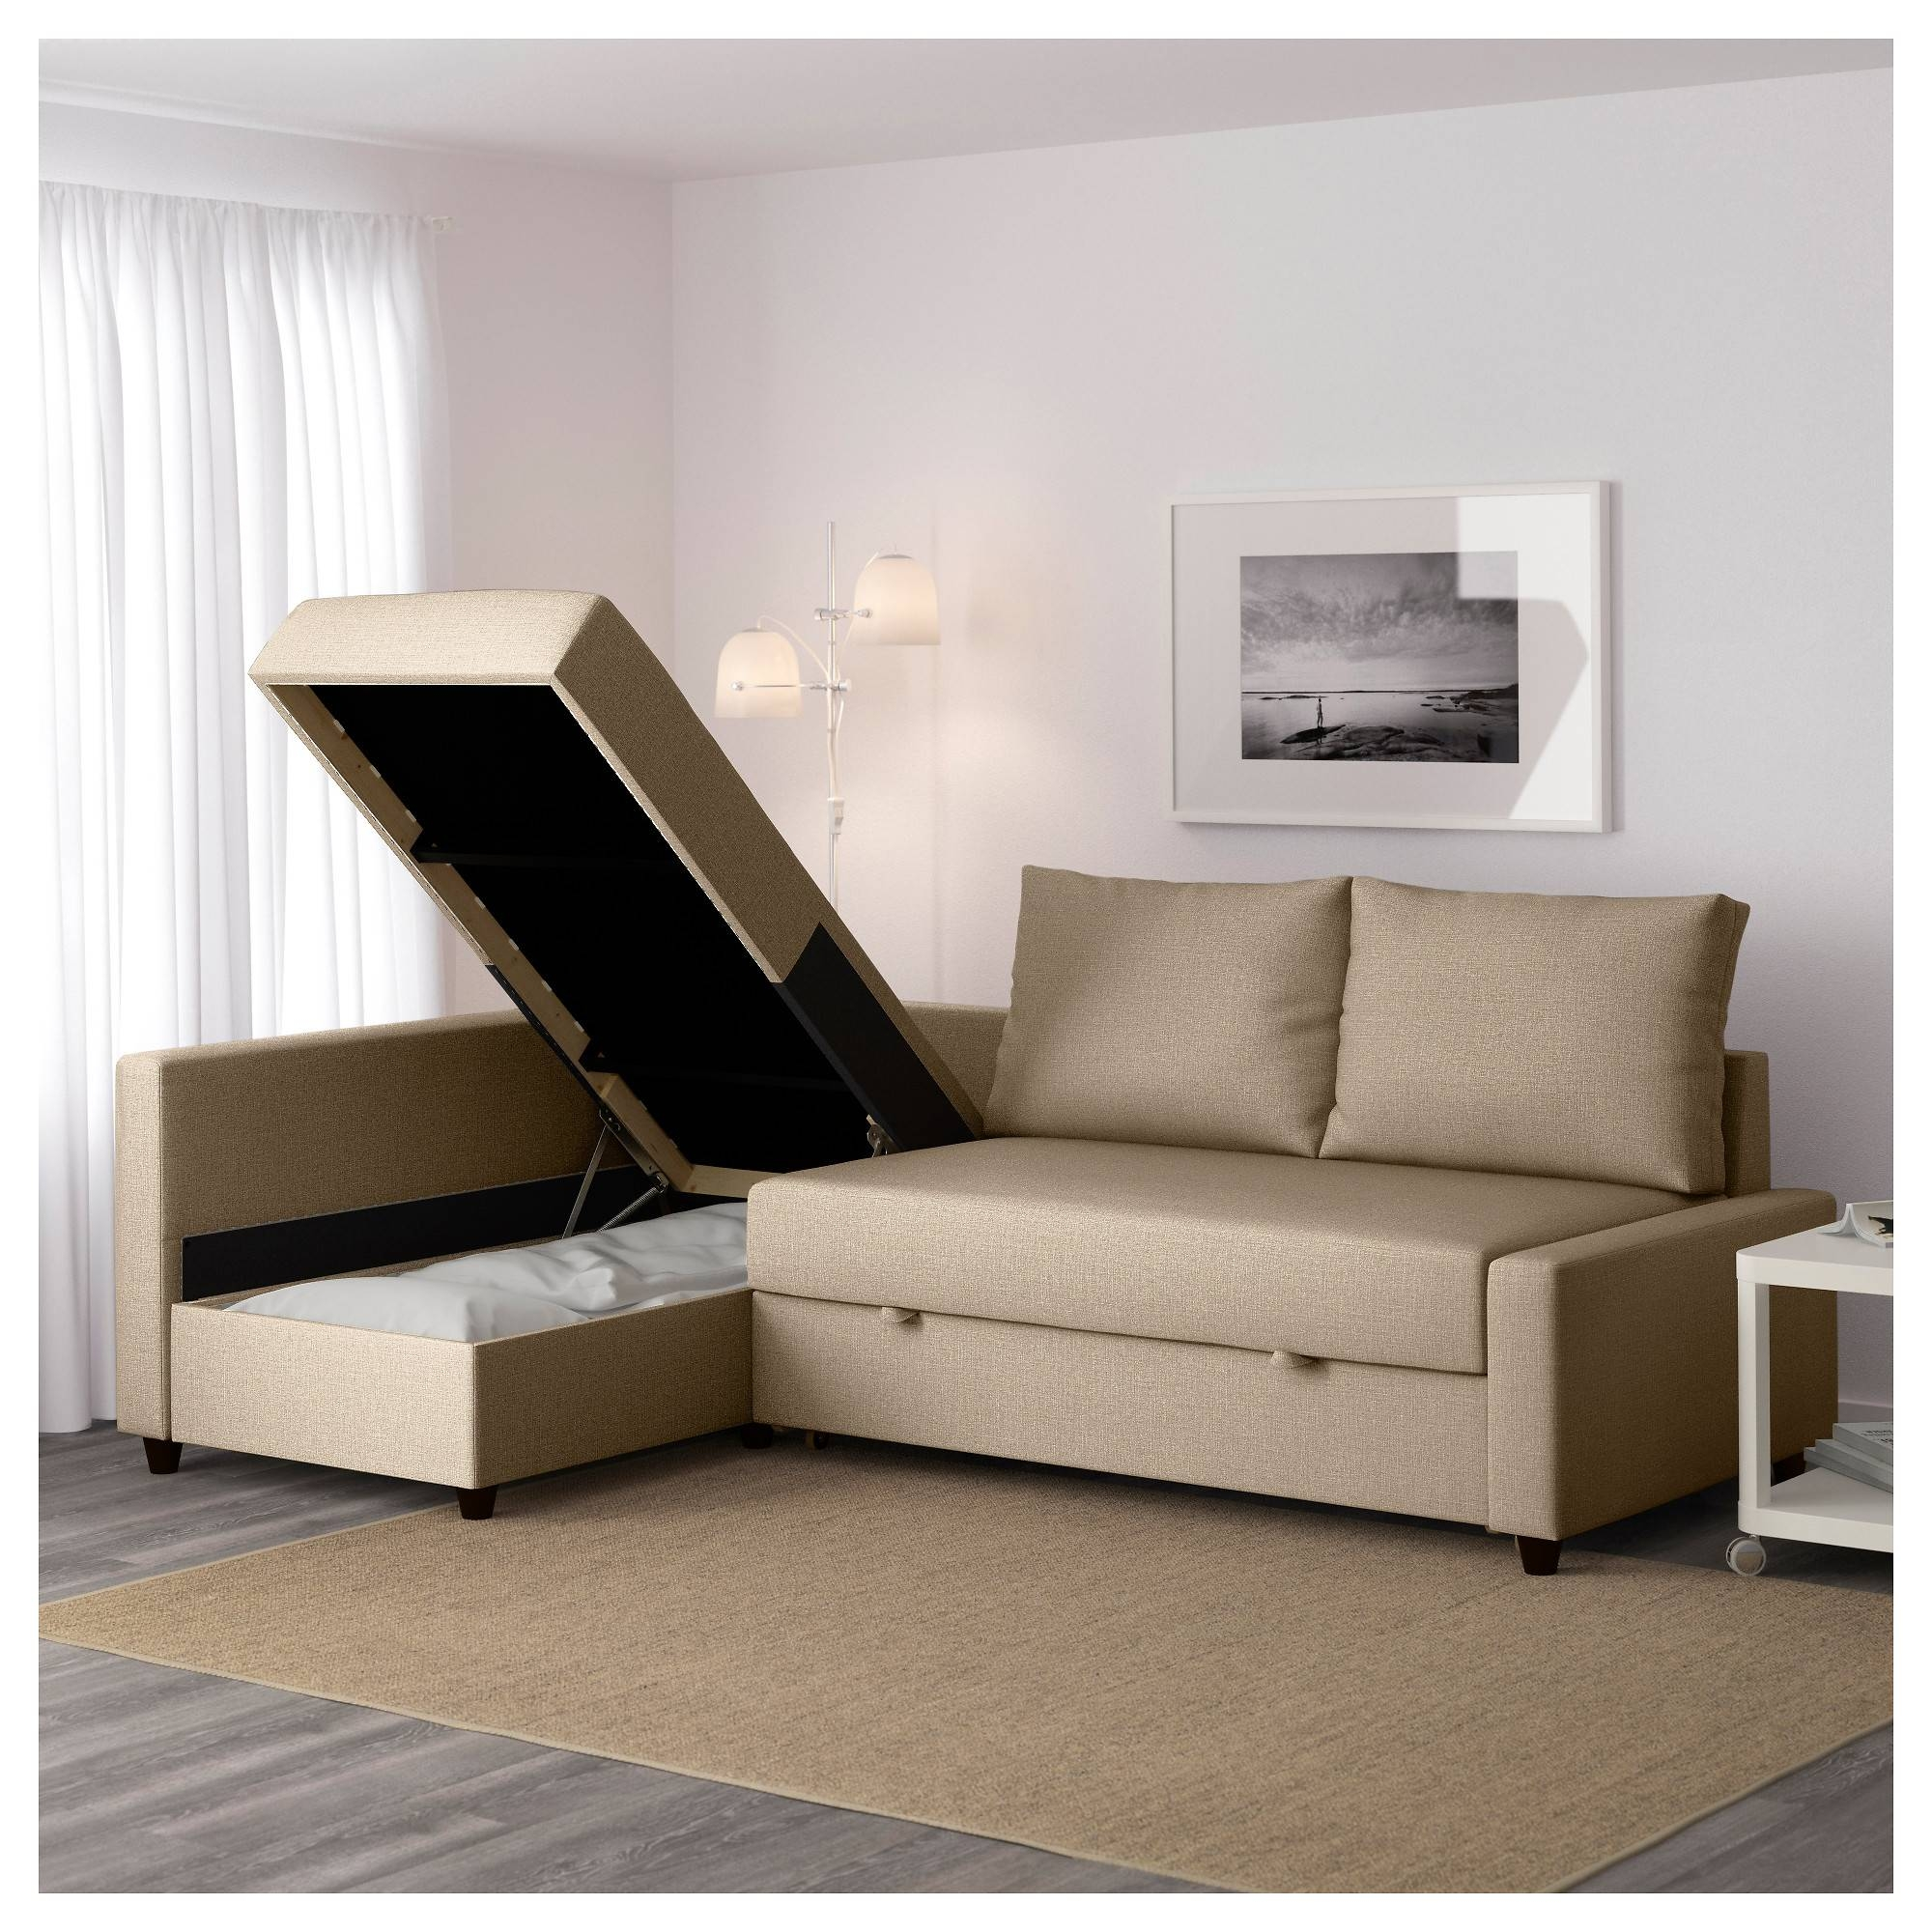 Friheten Sleeper Sectional,3 Seat W/storage - Skiftebo Dark Gray inside Sleeper Sectional Sofa Ikea (Image 6 of 25)